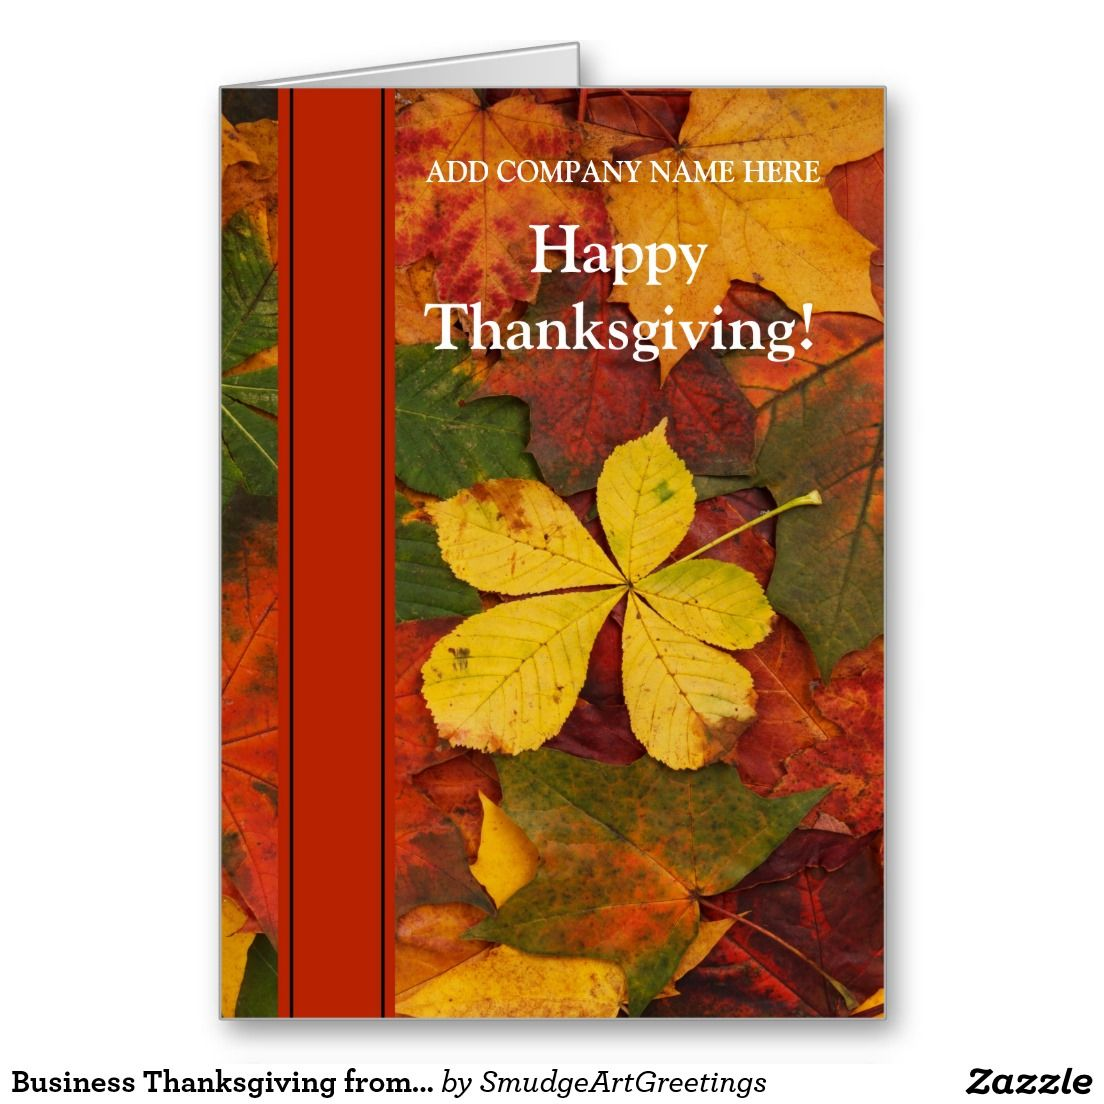 Business corporate thanksgiving card company fall and thanksgiving business corporate thanksgiving card thanksgiving greeting cardsfall leavessmall businesses m4hsunfo